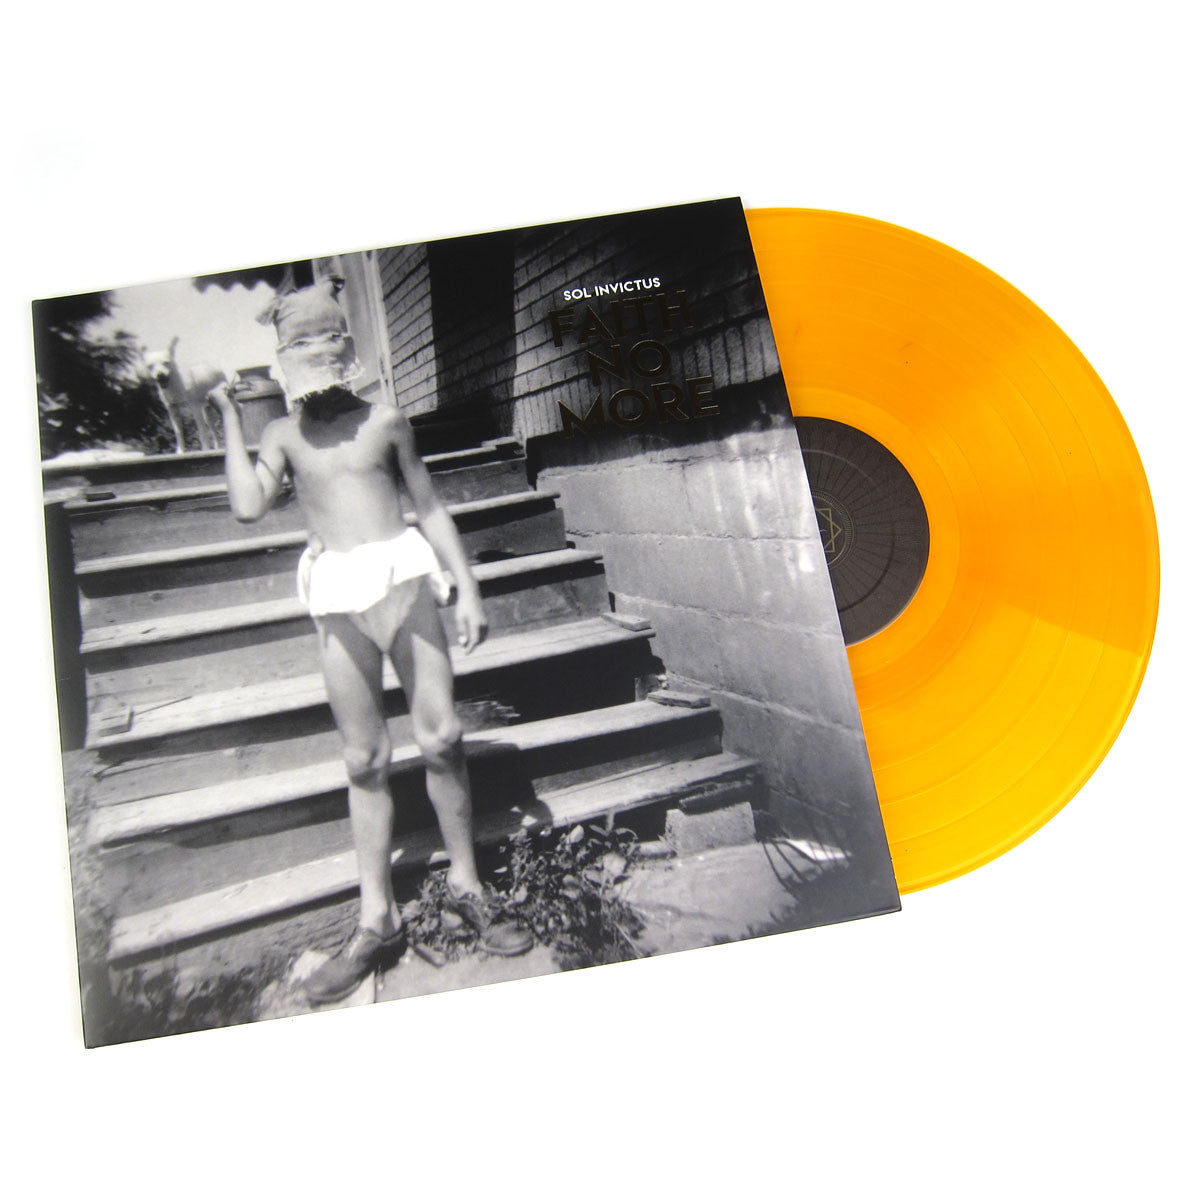 Faith No More: Sol Invictus (Indie Exclusive Colored Vinyl) Vinyl LP